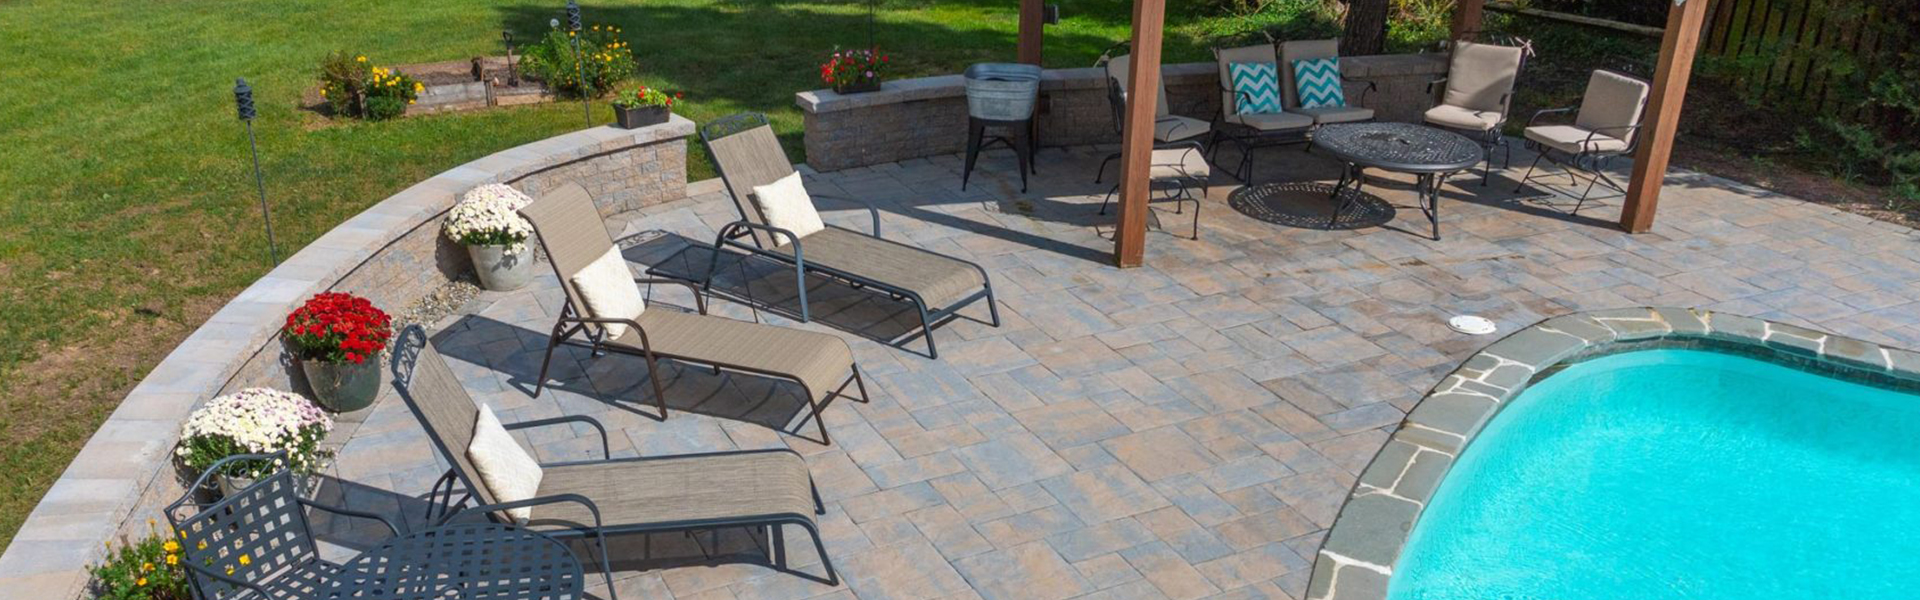 Landscape Patio Pavers in Sykesville, Ellicott City, Clarksville, MD